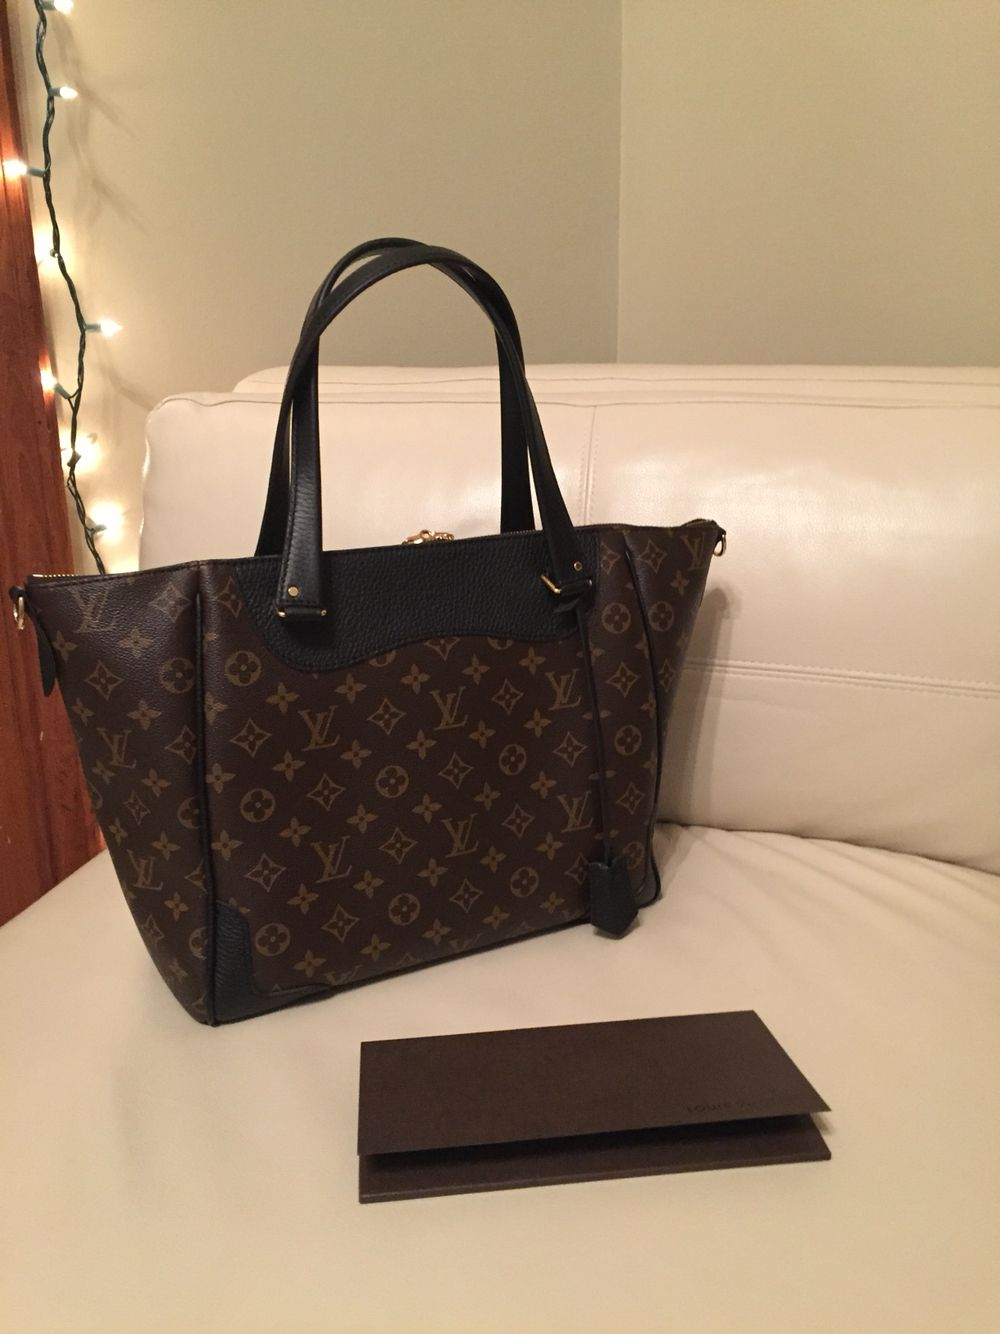 23f97f9aa0e2 My new Louis Vuitton Estrela MM handbag in Noir. I love the black accents  with the monogram canvas!